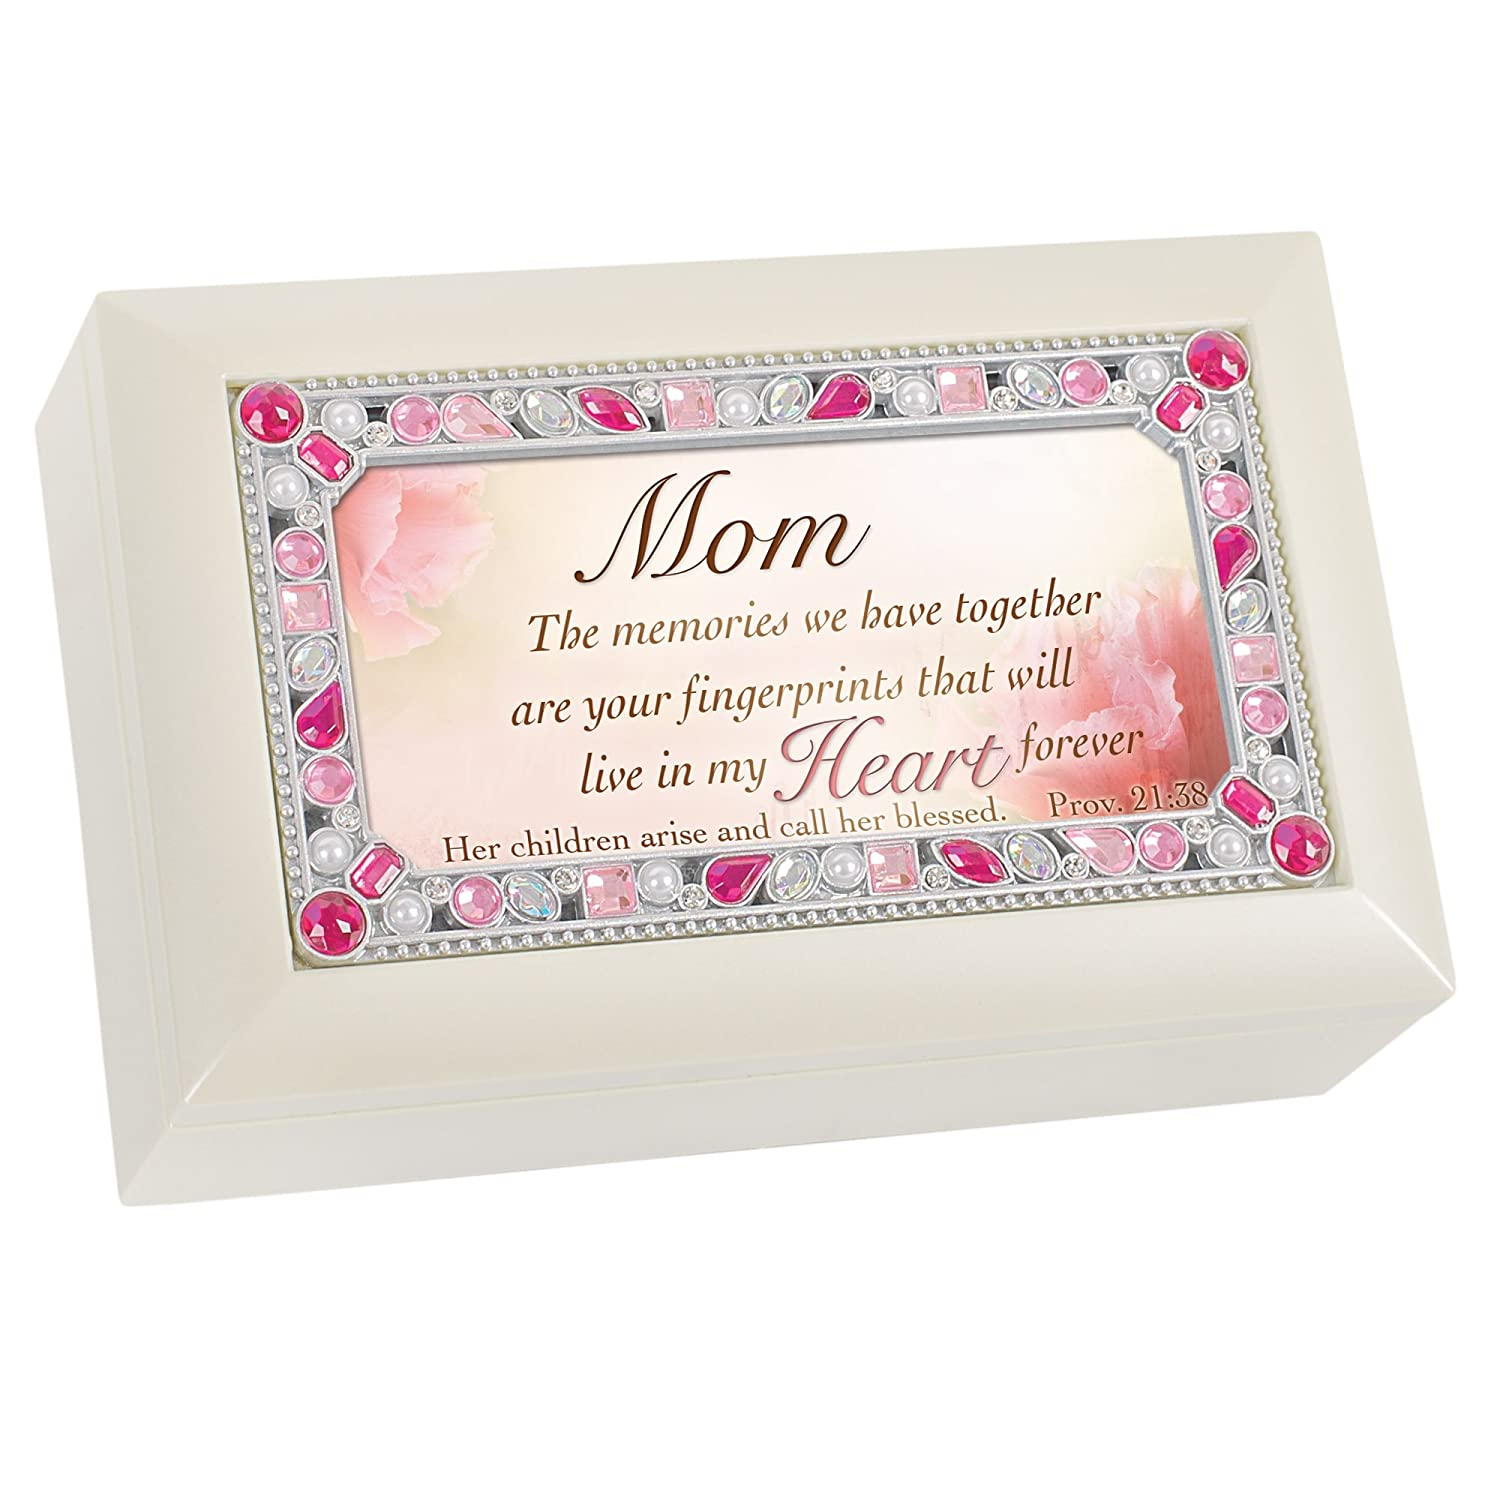 Mom The Memories Jeweled Ivory Jewelry Music Box Plays Tune Amazing Grace Amazon In Home Kitchen